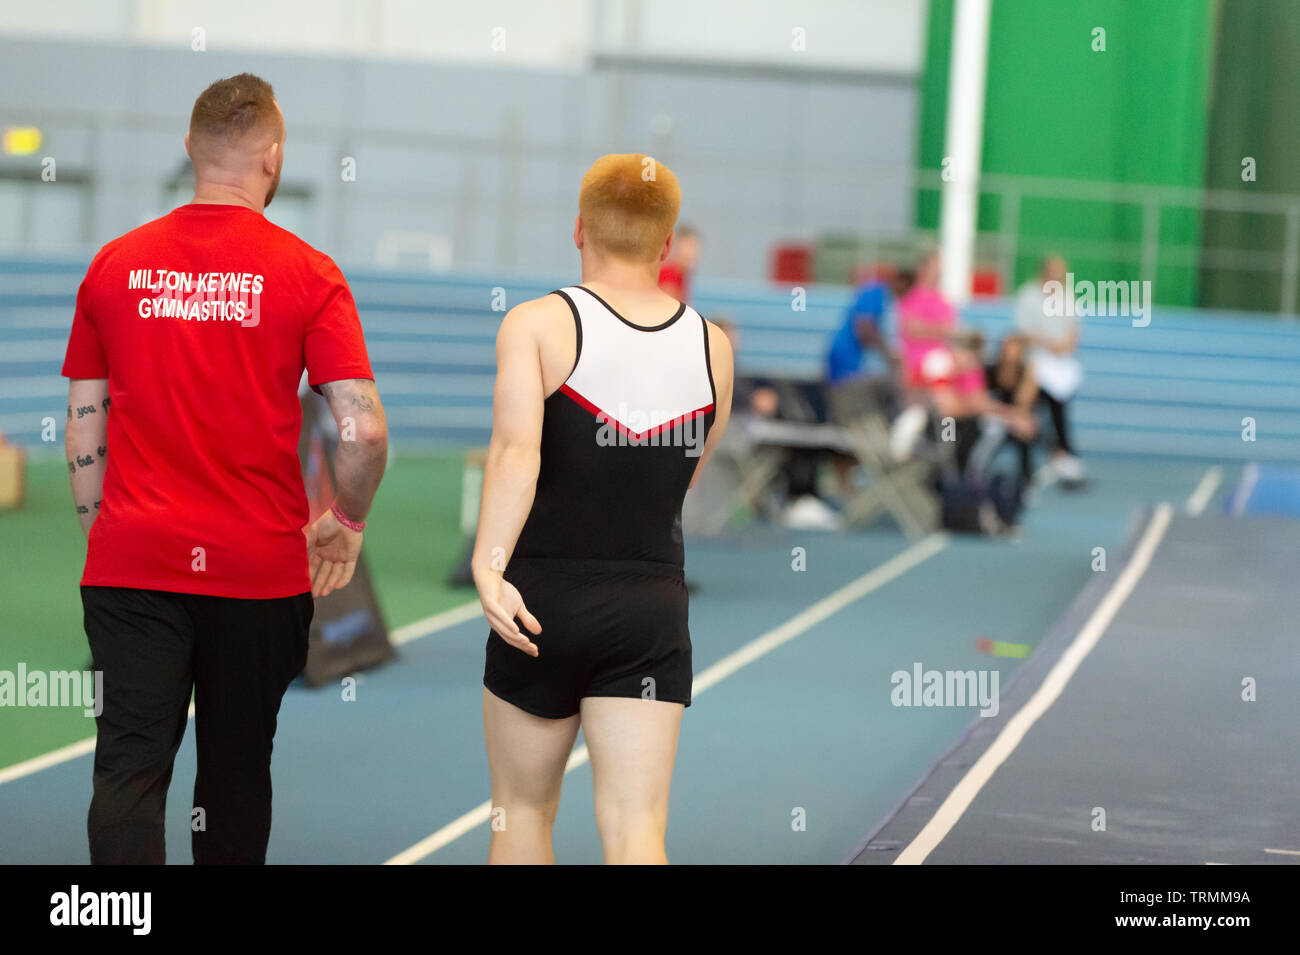 Sheffield, England, UK. 2 June 2019. Coach Michael French (L) and William Breslin (R) from Milton Keynes Gymnastics Club in action during Spring Series 2 at the English Institute of Sport, Sheffield, UK. - Stock Image